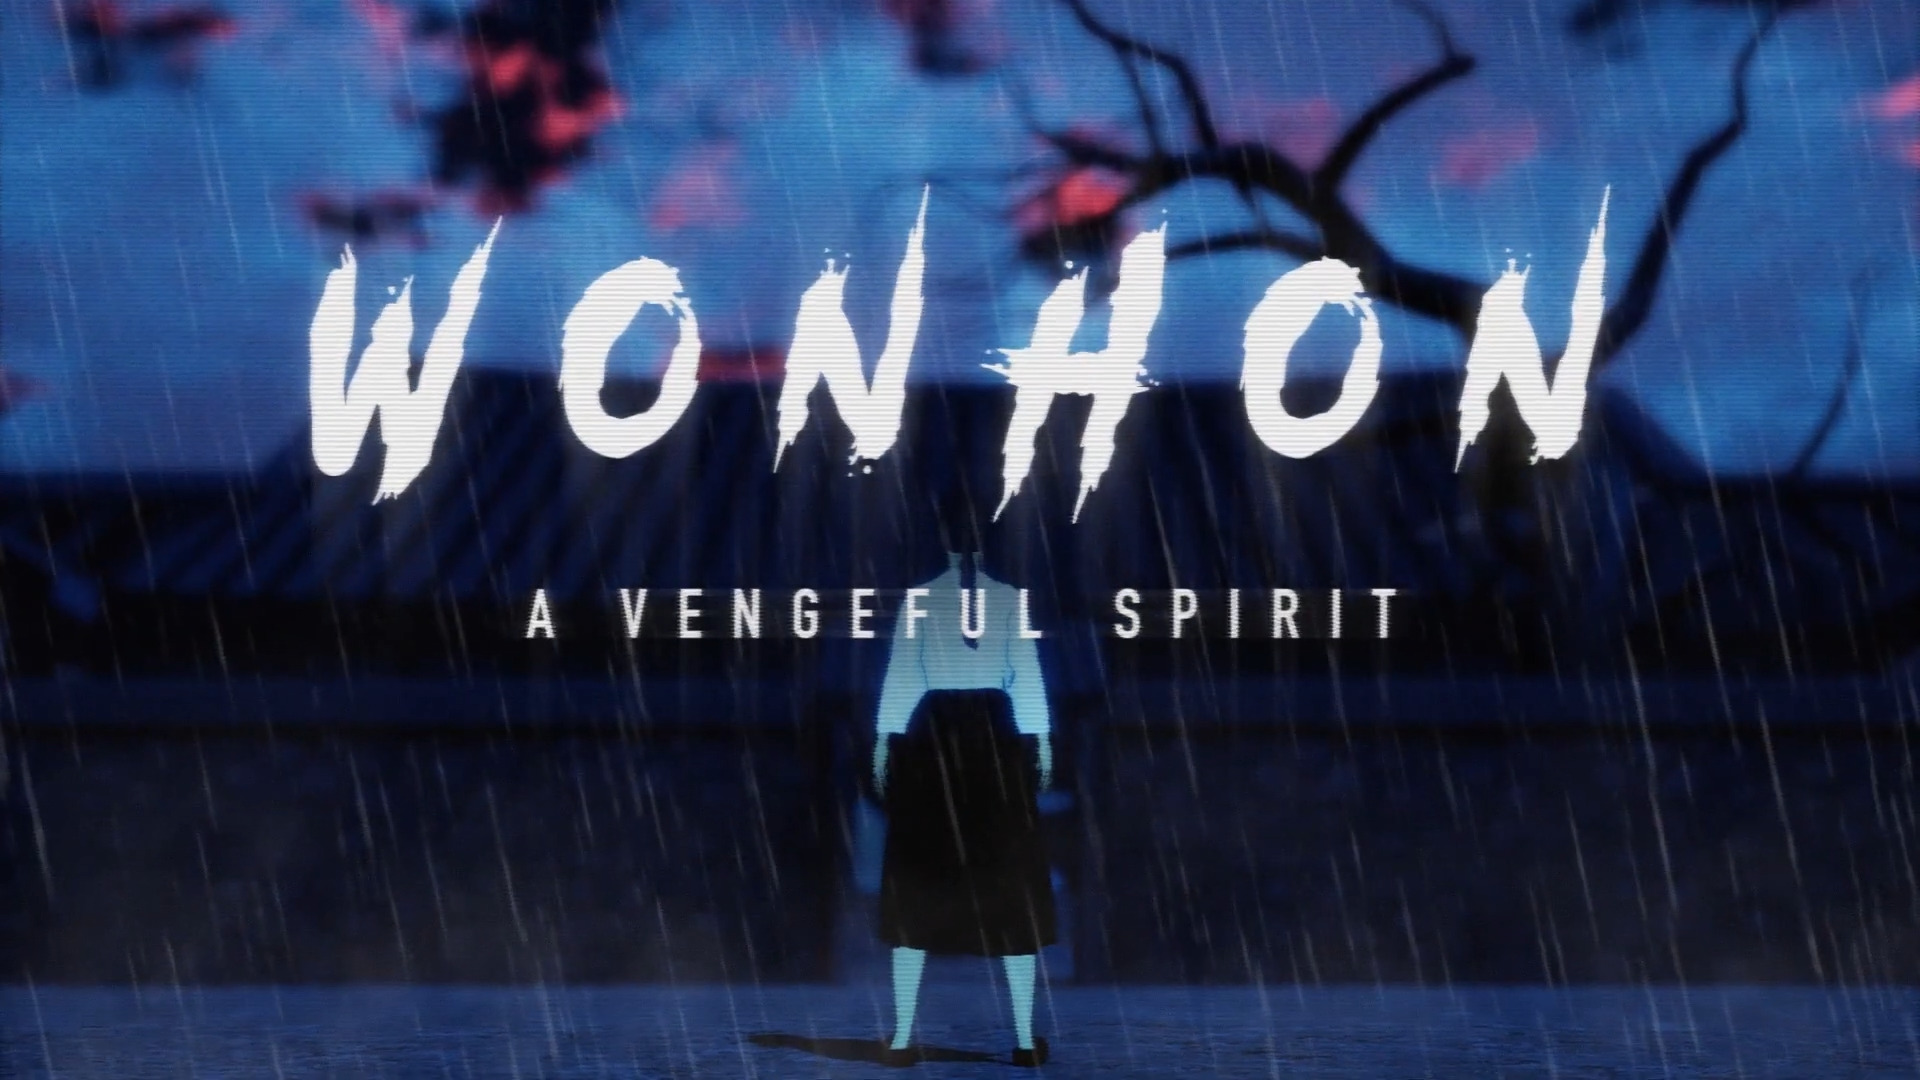 What Is Wonhon: A Vengeful Spirit? Indie Paranormal Stealth Game Where You Are The Ghost